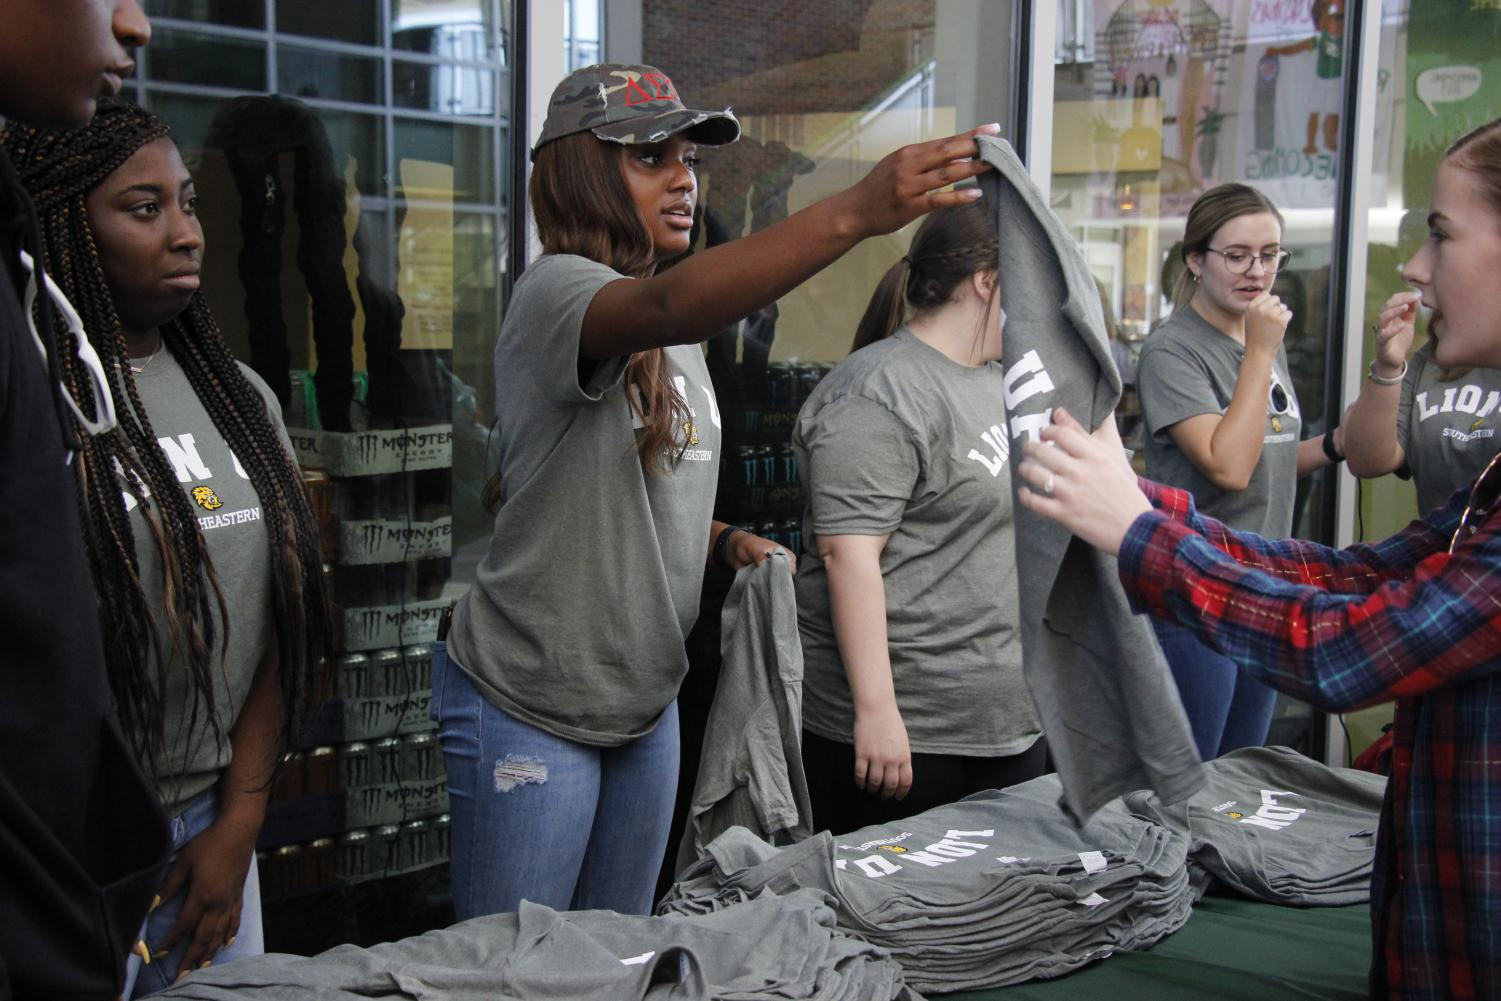 The Student Government Association hosted a T-Shirt Swap to celebrate Homecoming Week and Lion Up Tuesday. In order to boost school spirit, SGA has decided to give away free Lion Up T-shirts one Tuesday a month starting on Oct. 8.